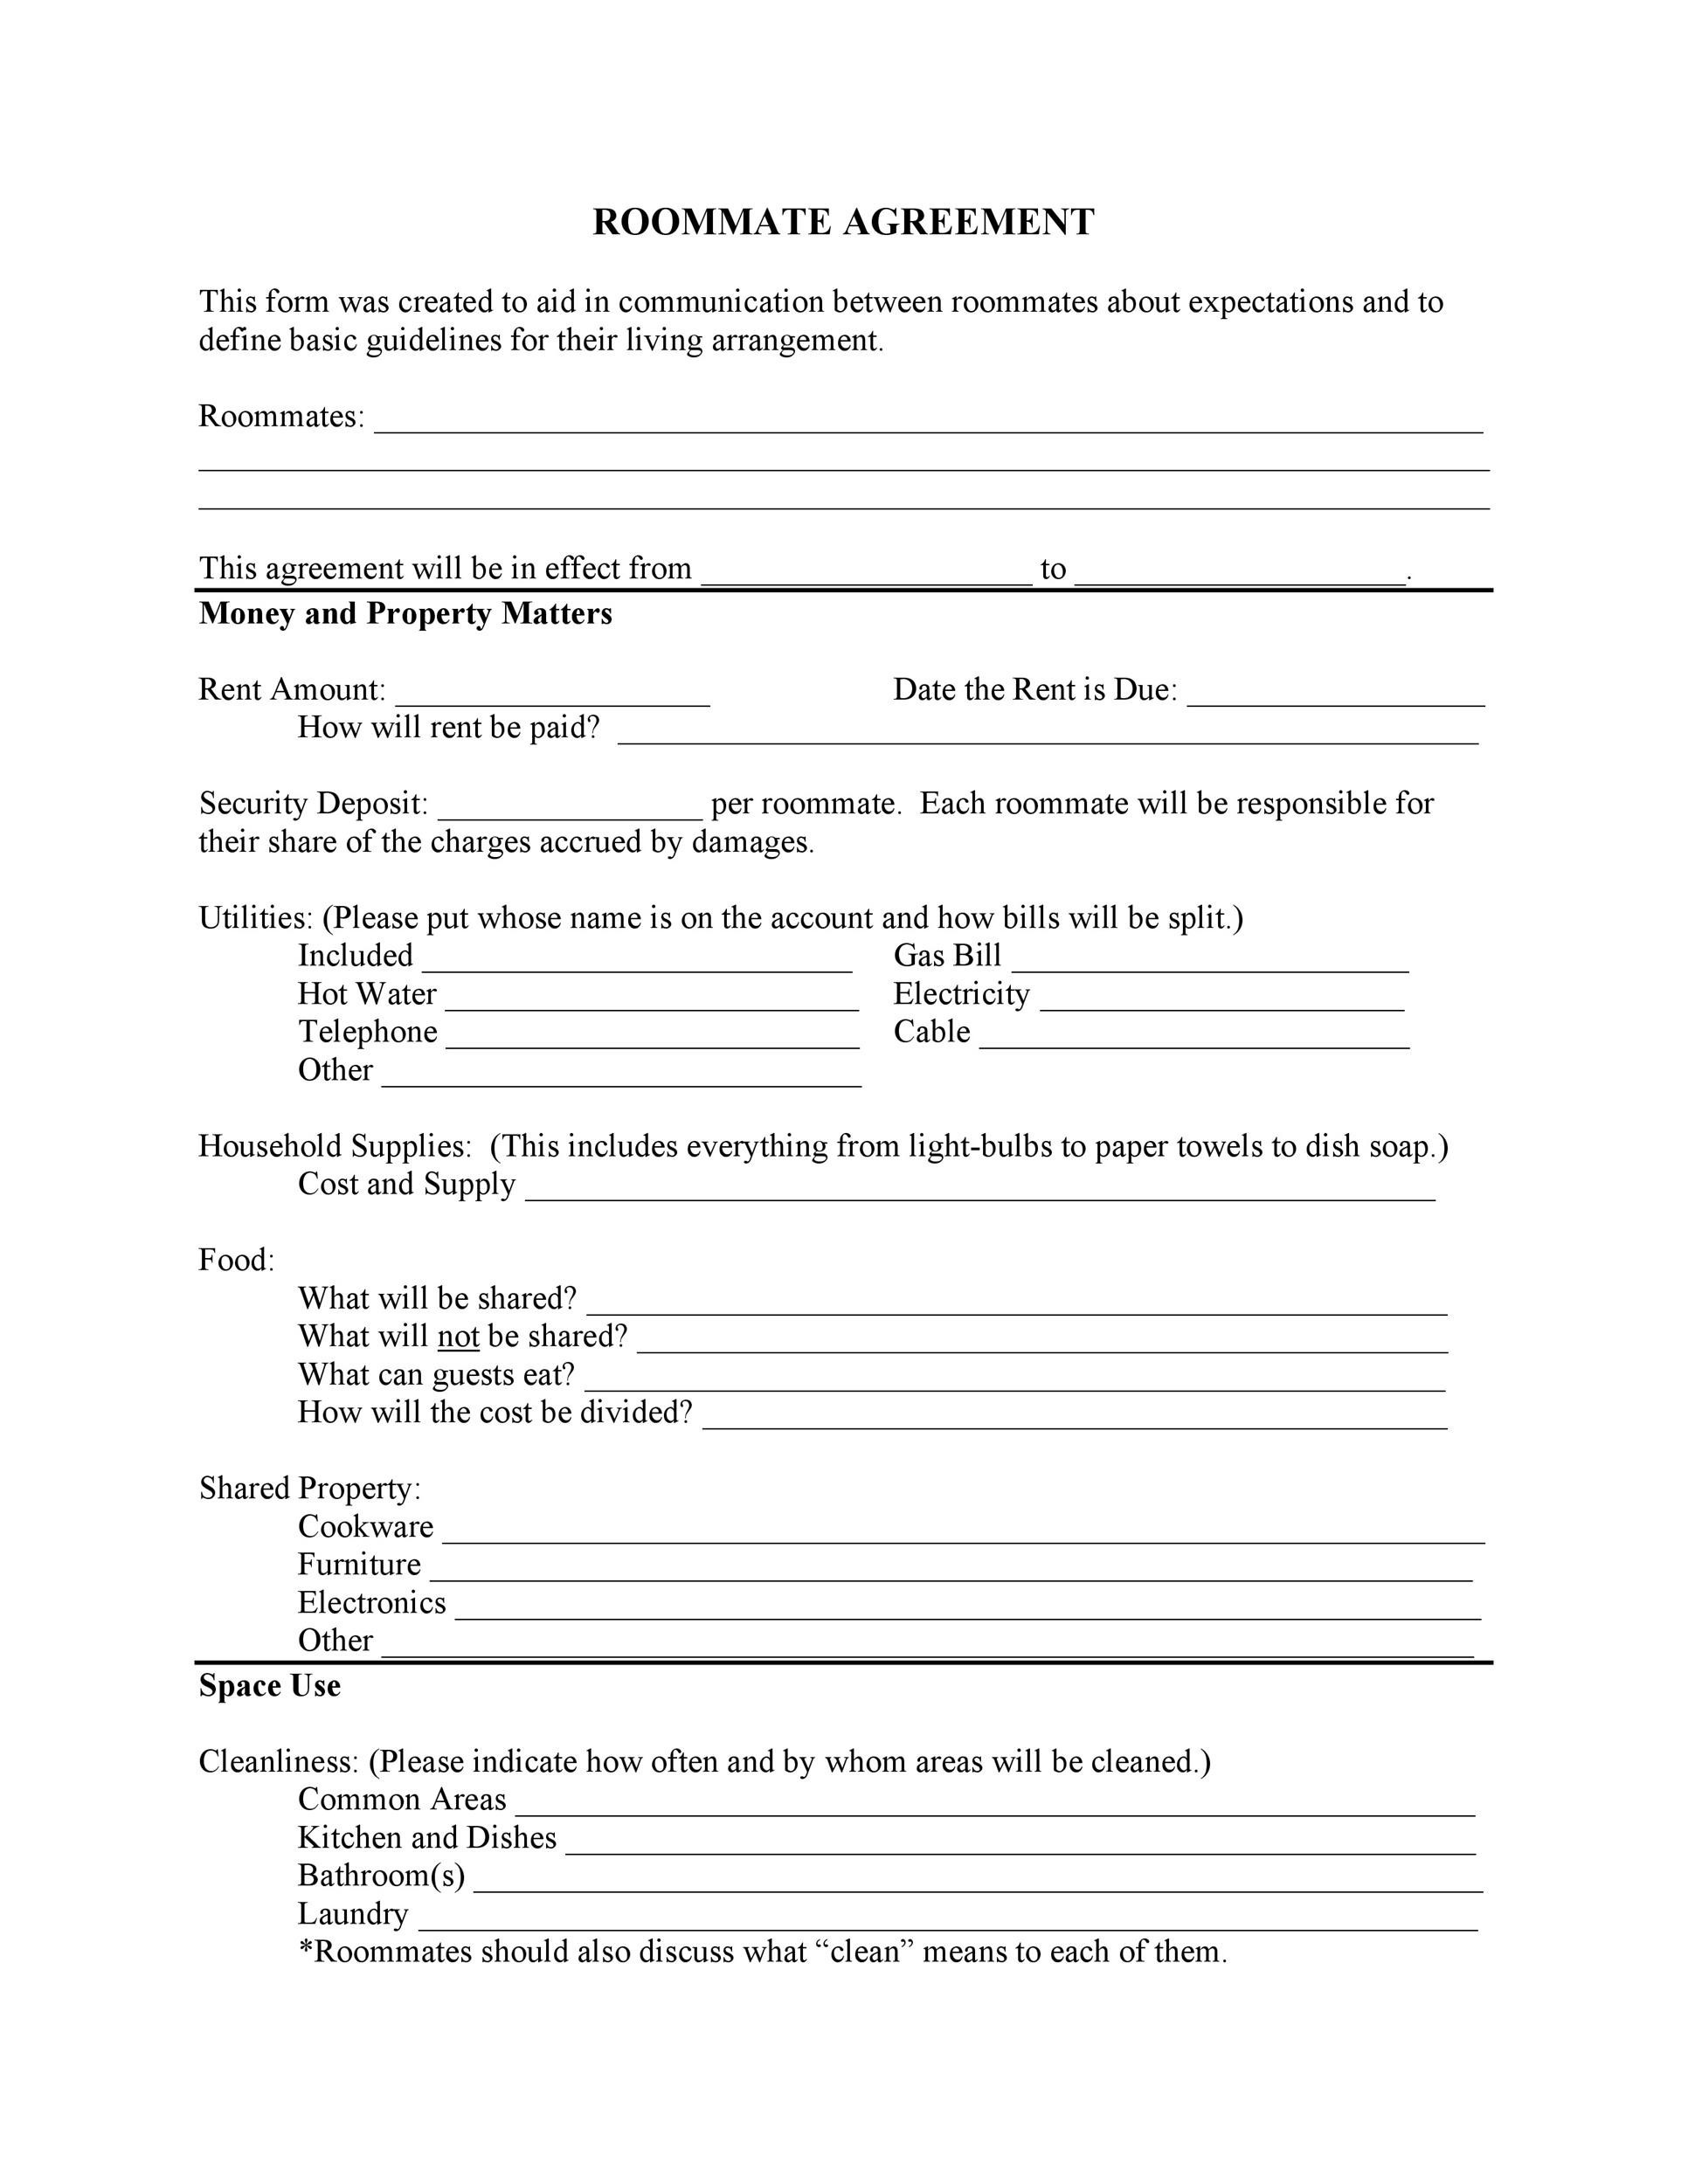 40 Free Roommate Agreement Templates Forms Word PDF – Sample Commercial Security Agreement Template